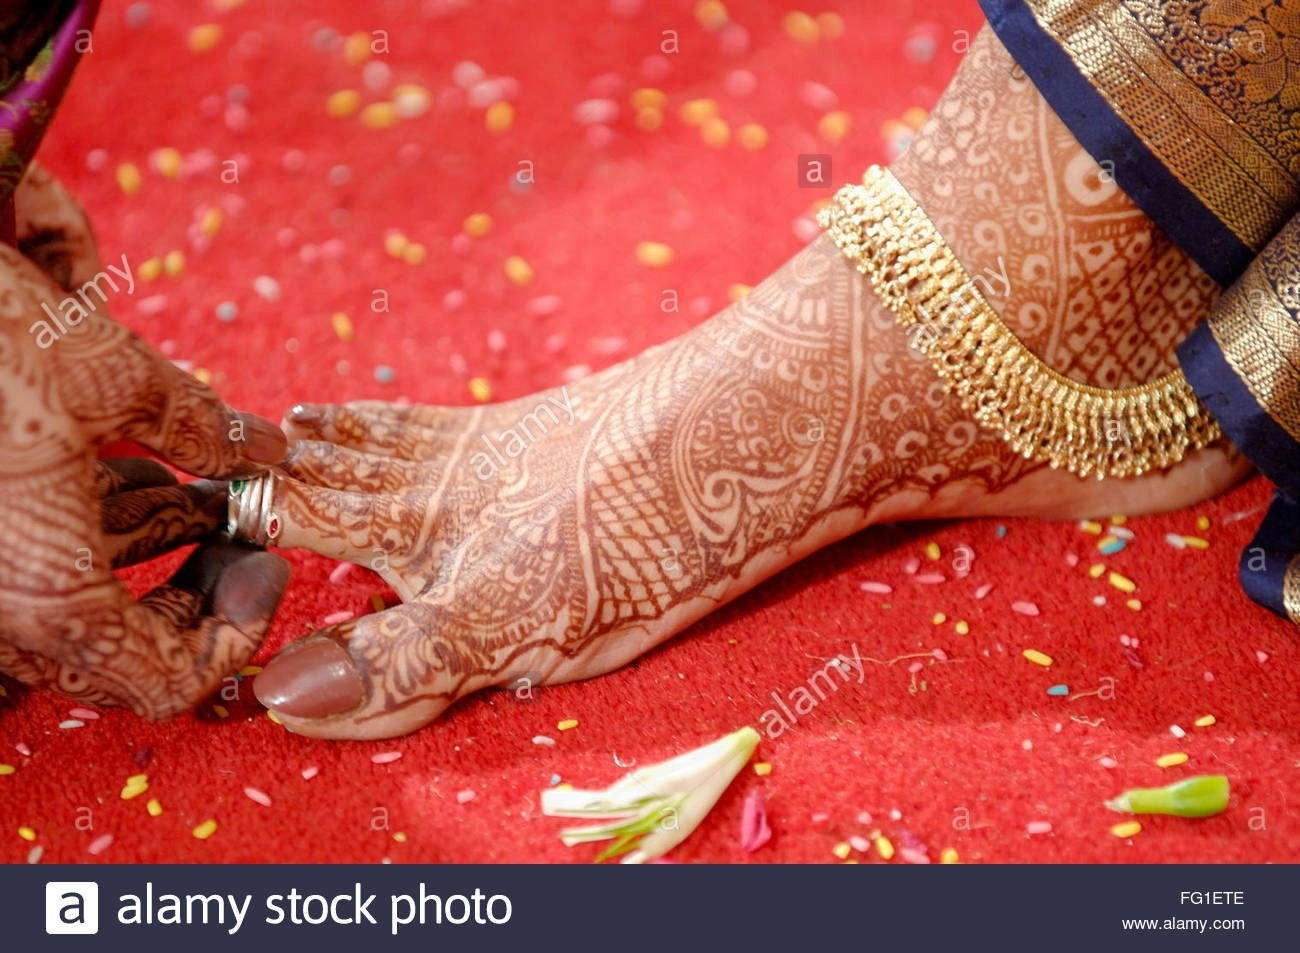 Toe Ring Stock Photos & Toe Ring Stock Images – Alamy Inside Most Current Wedding Toe Rings (View 10 of 15)